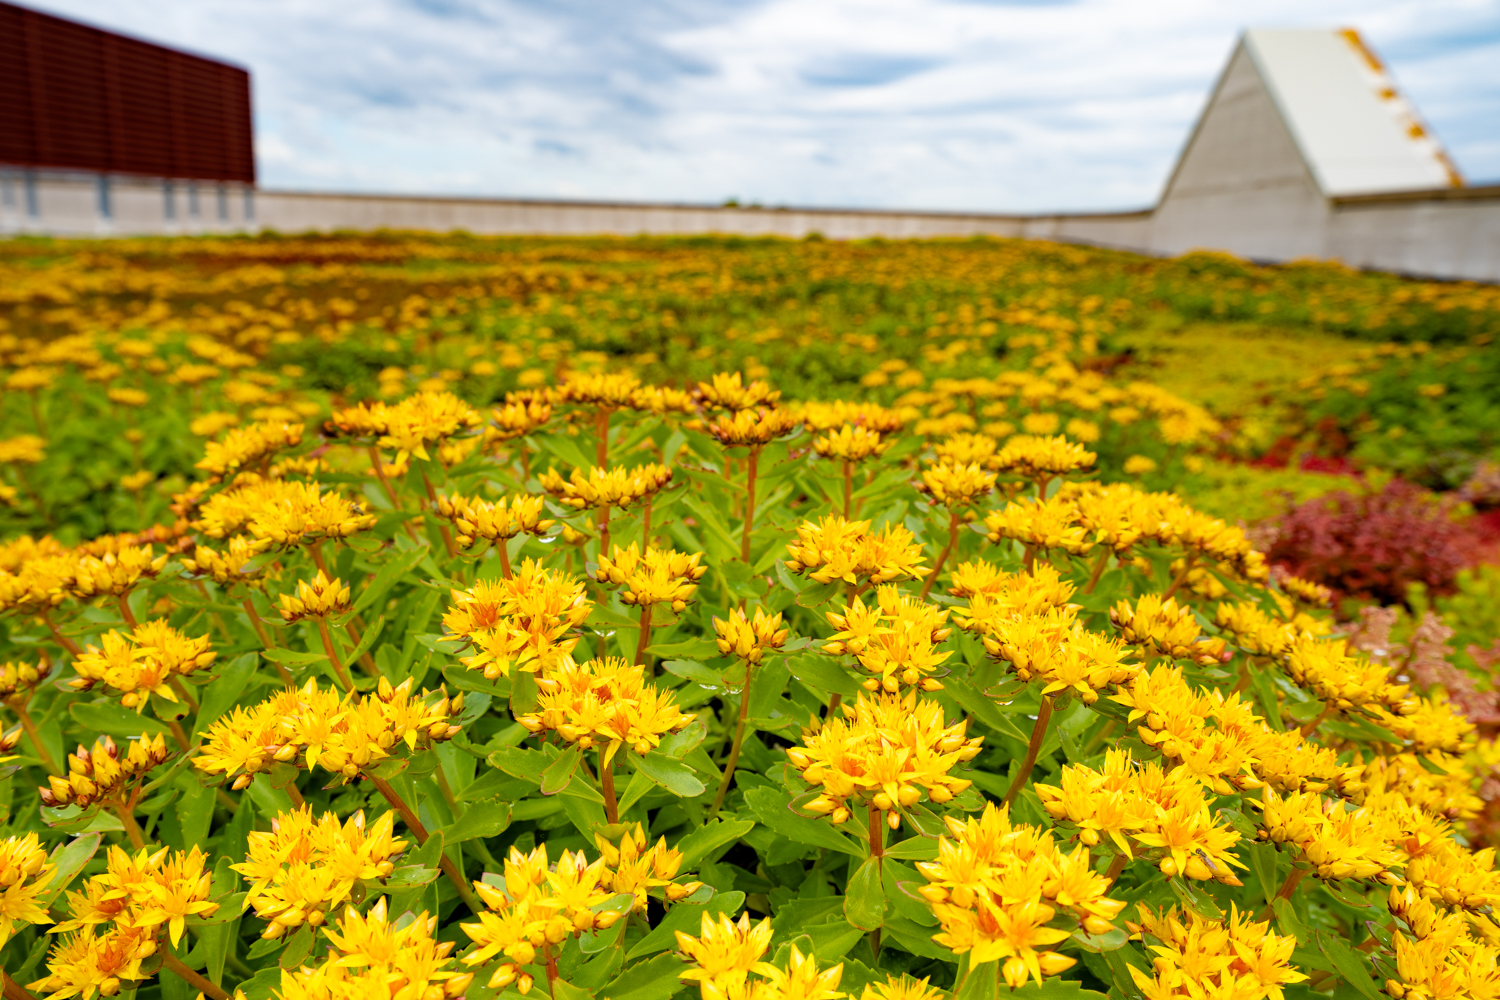 Lake Forest High School Green Roof by Ecogardens-2.jpg